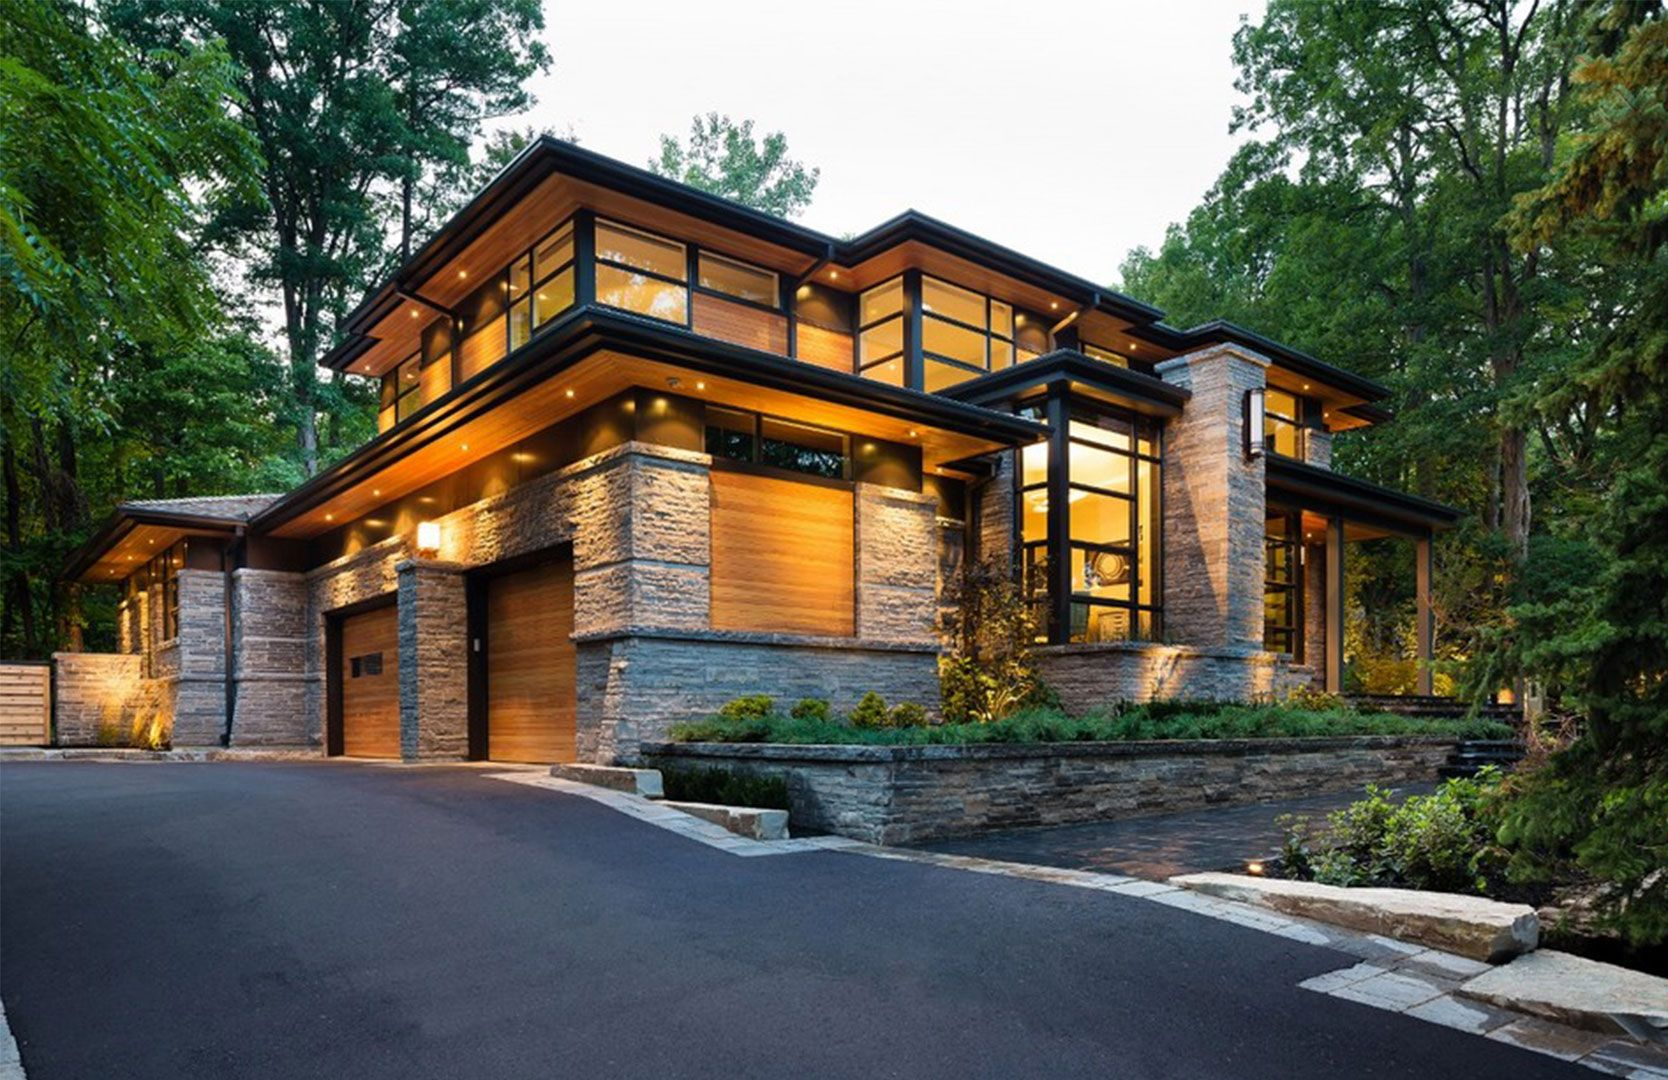 Glass wood stone | Cool Homes | Pinterest | Wood stone, Stone and Woods